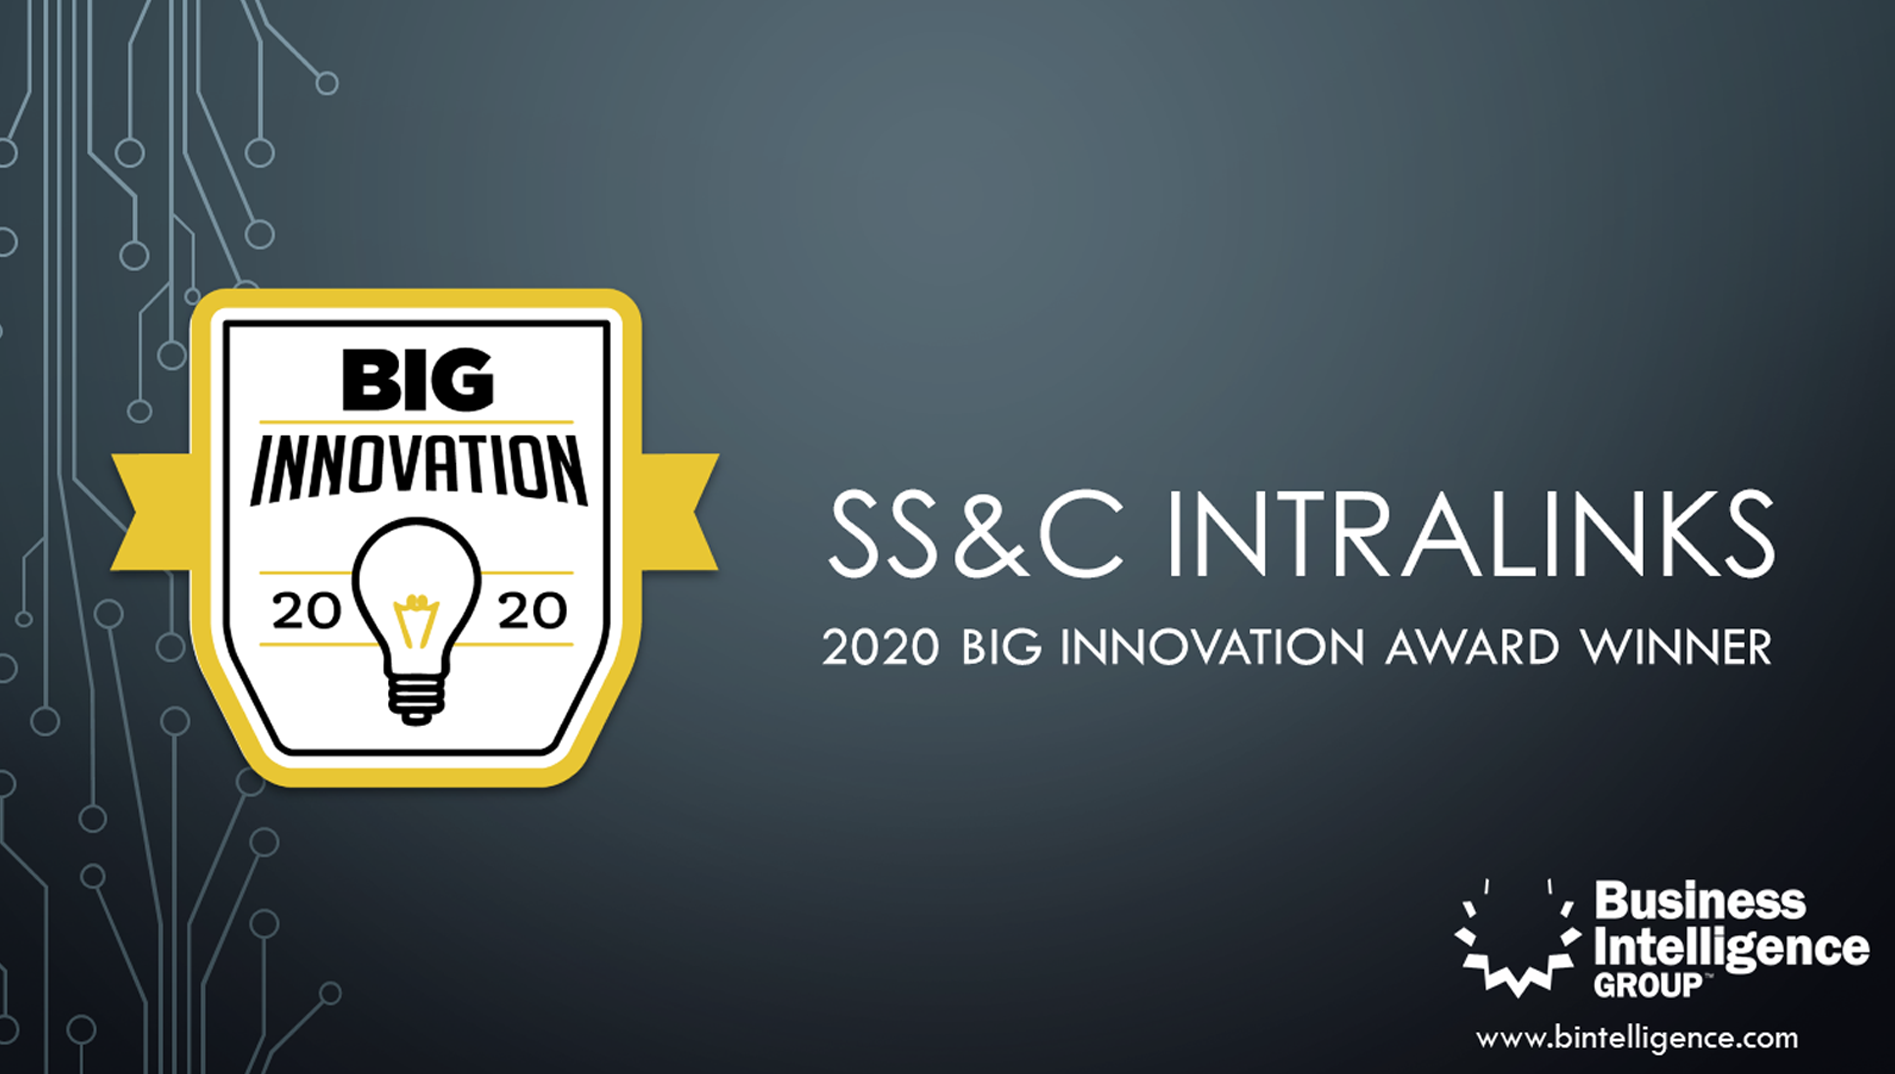 SSNC Intralinks Deal Marketing BIG Innovation Award 2020